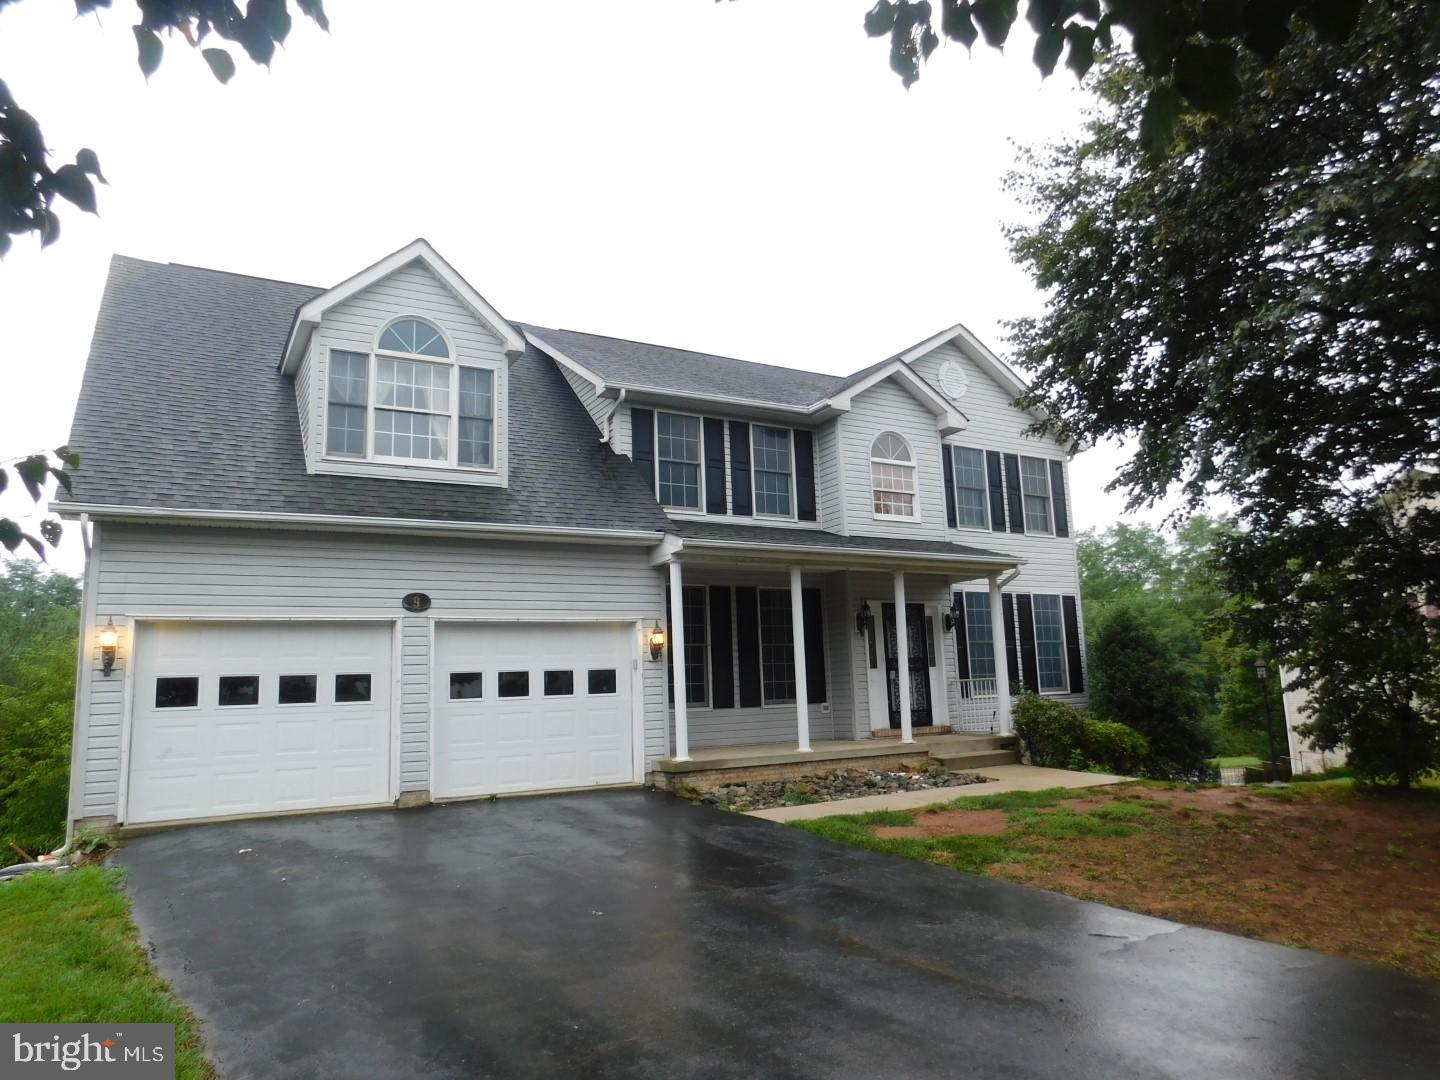 Price To Sell Fast! Desirable 3 Level Colonial In a Quiet Cul De Sac, 2 Car Garage, Walkout Basement